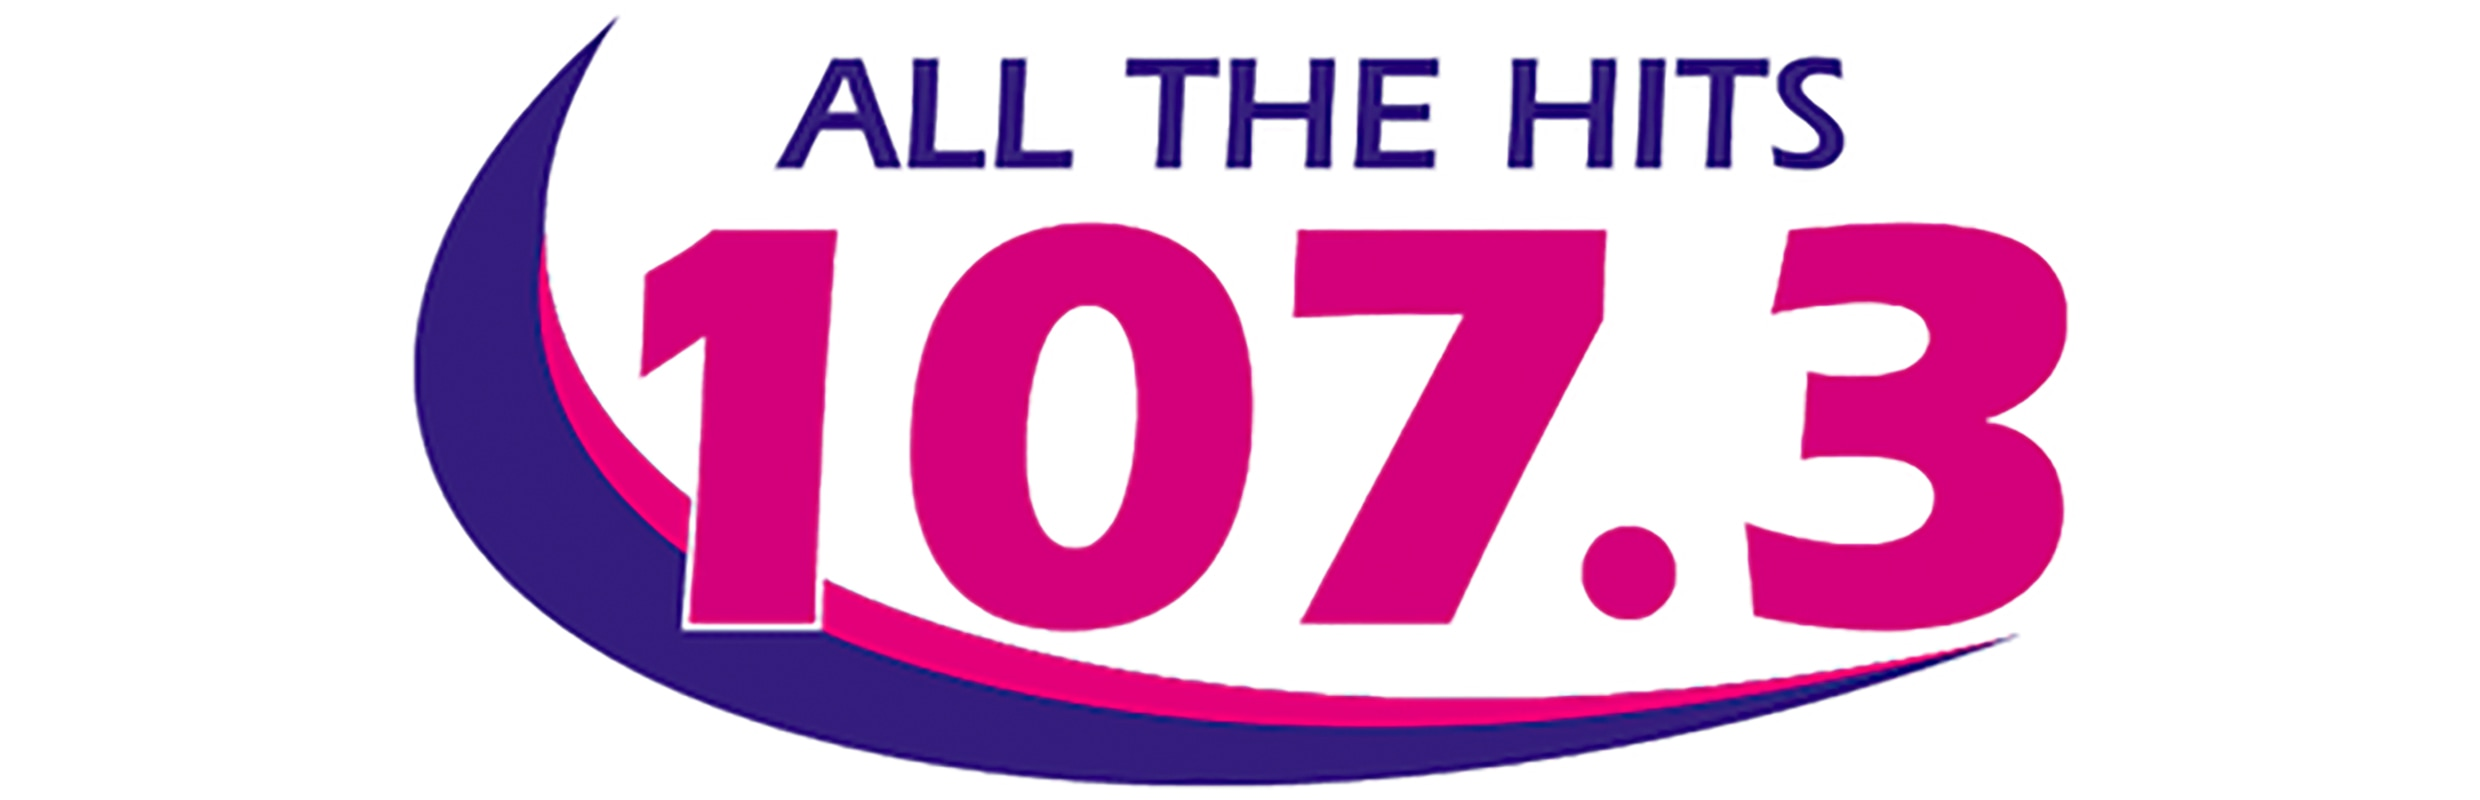 107.3 all the hits selected